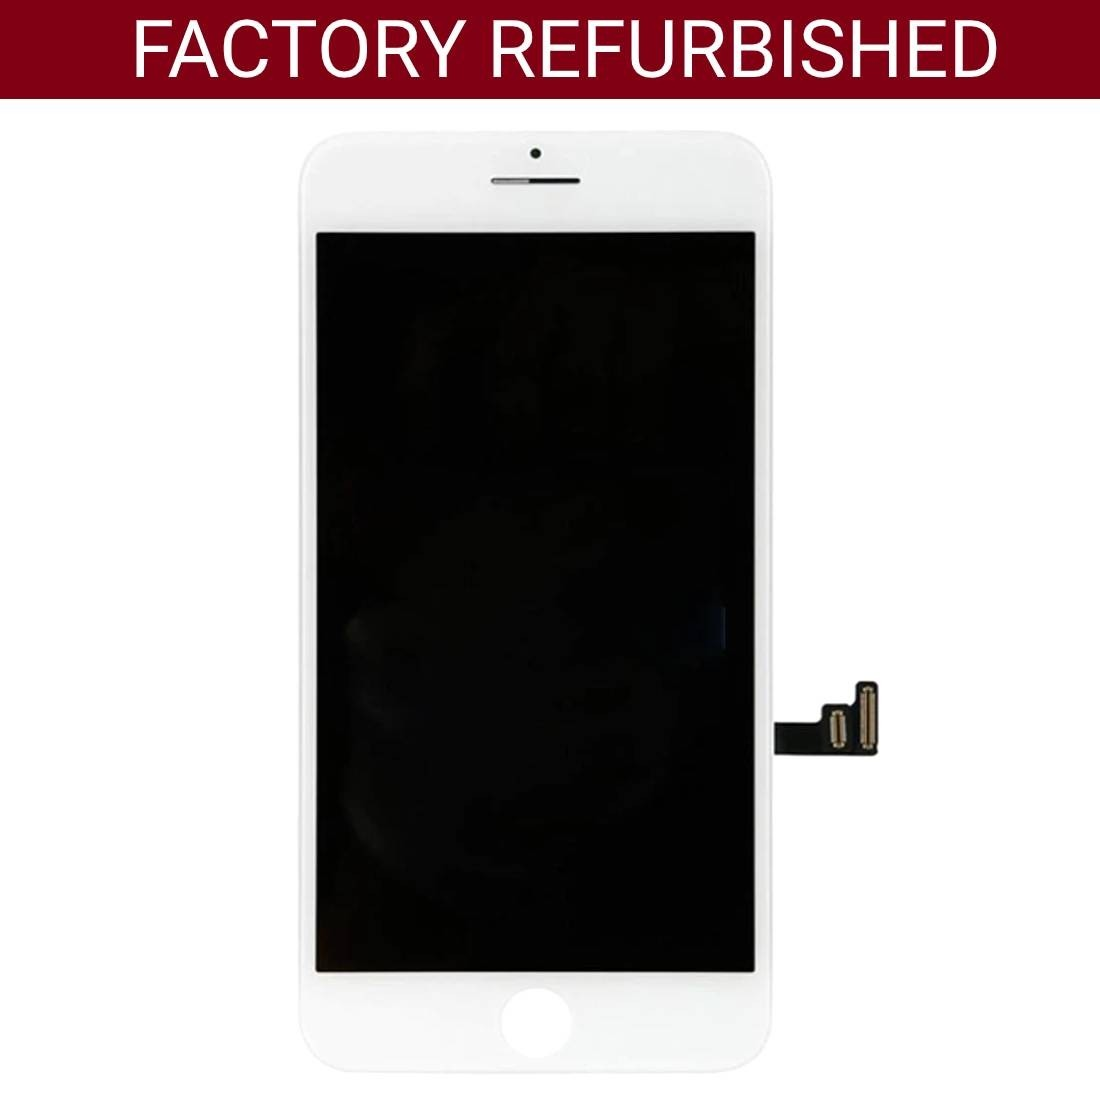 Refurbished LCD Screen Replacement for iPhone 7 Plus White 5.5""